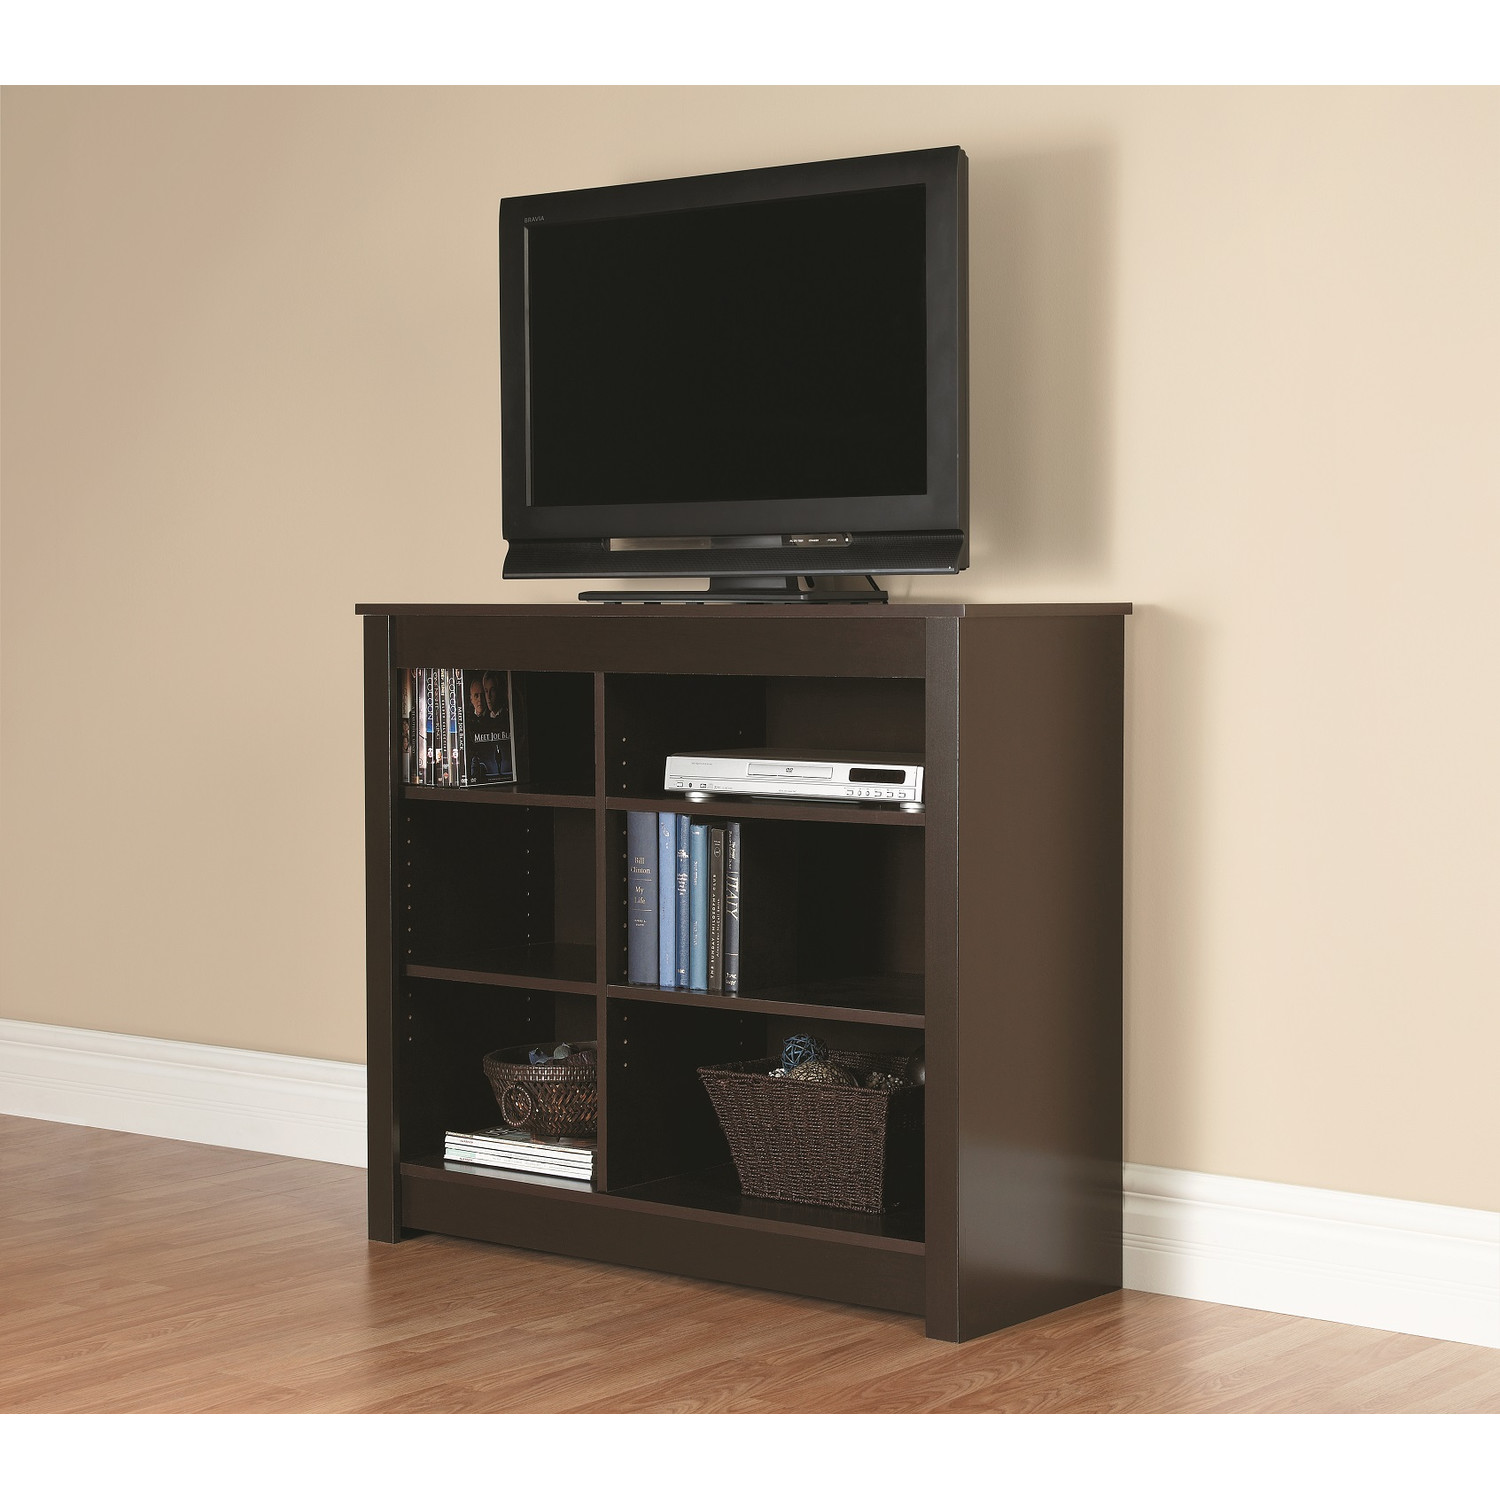 besta bookcase room blog bookshelf img ikea bookcases stand shirley in tv family with built hack